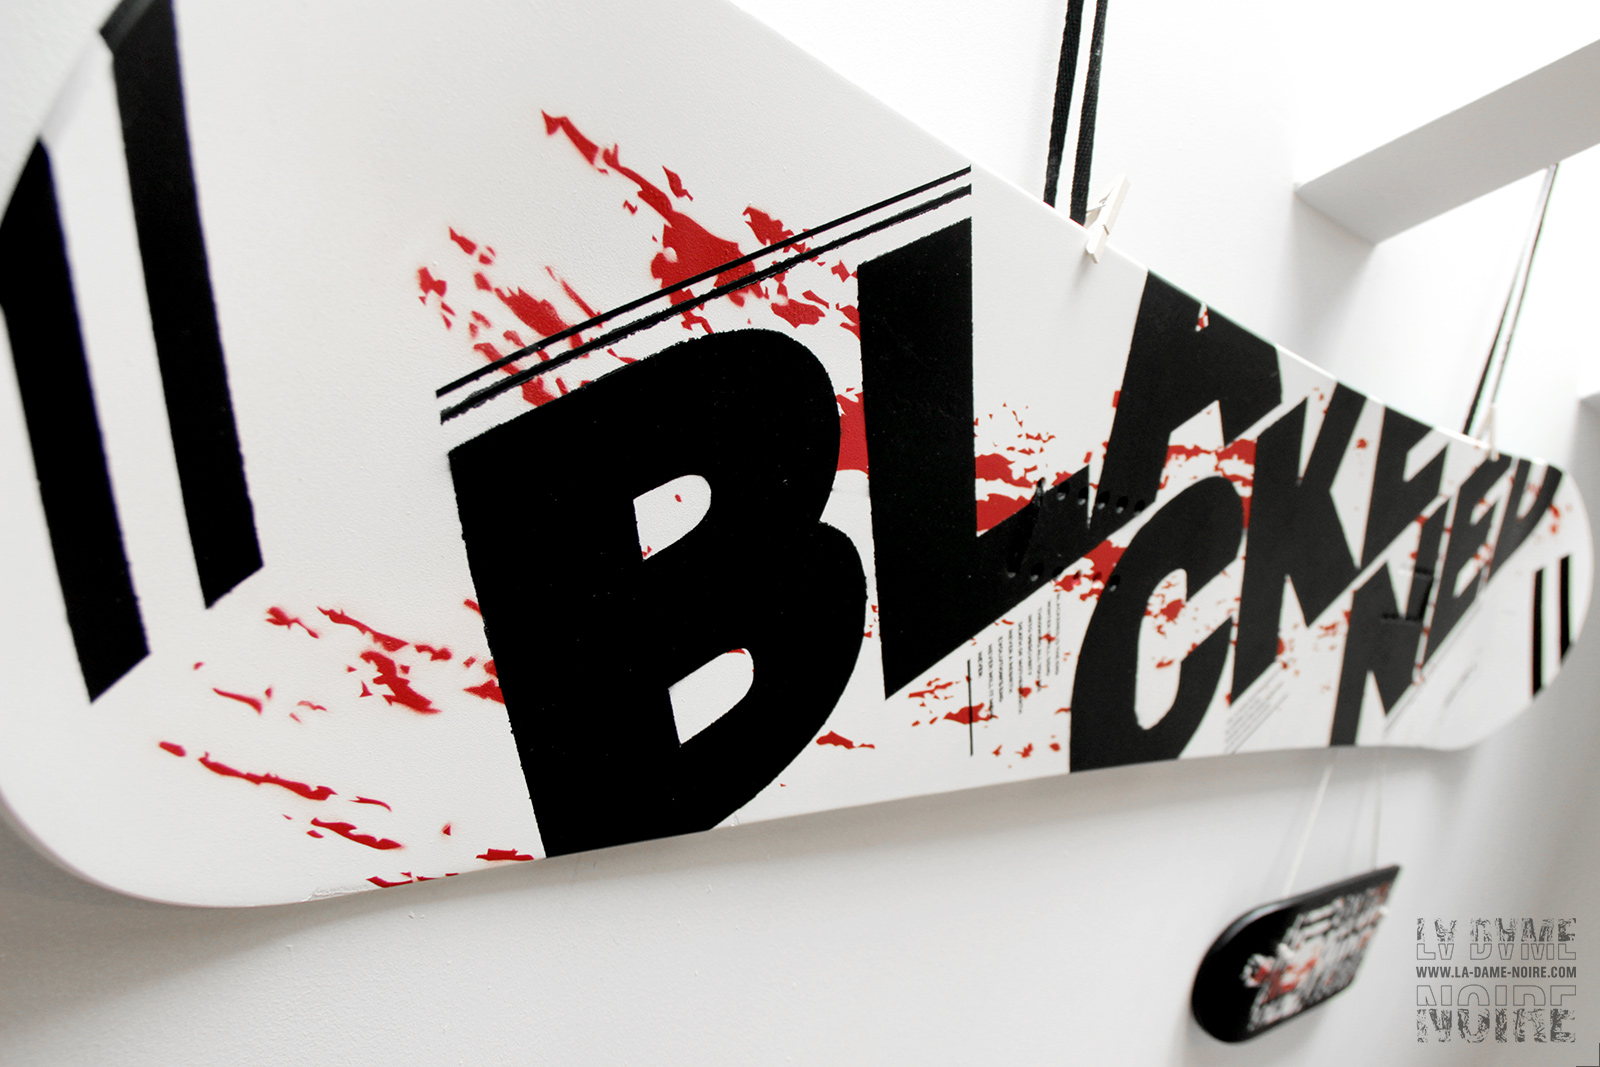 Snowboard painted in black, white, red, and the word Blackened in big bold letters